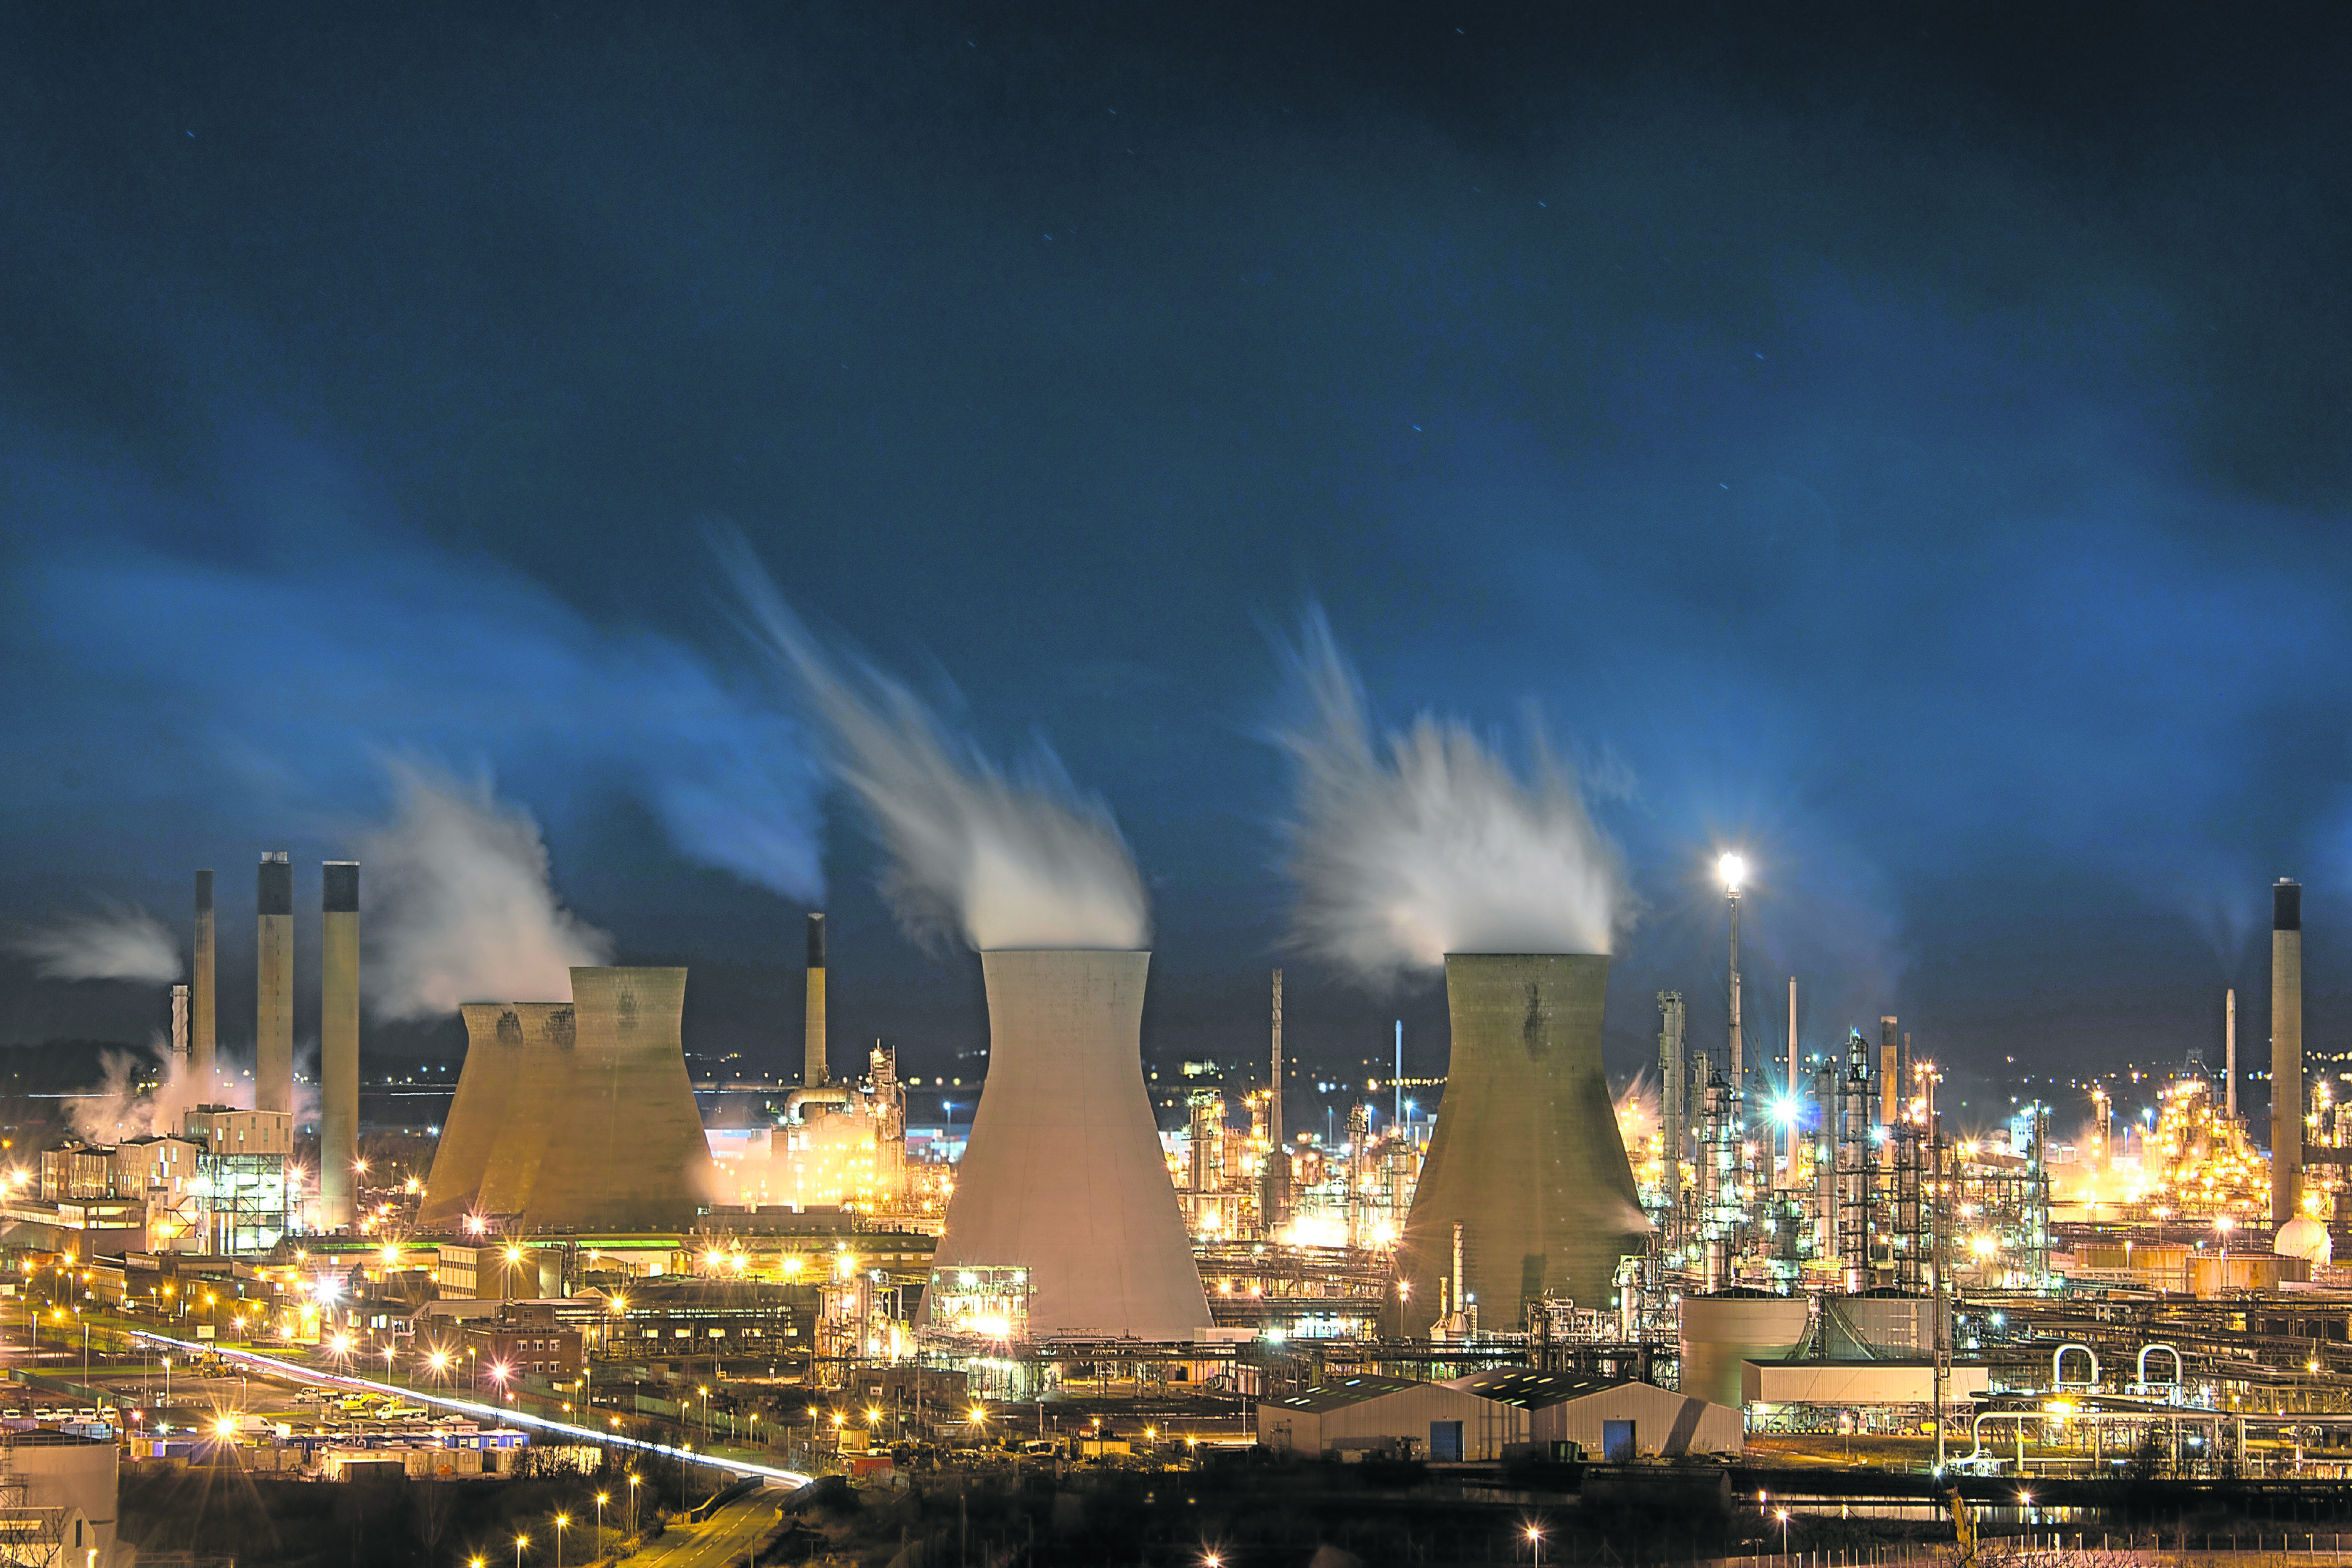 Ineos Grangemouth oil and petrochemicals refinery, one of the largest of kind in Europe, at night.